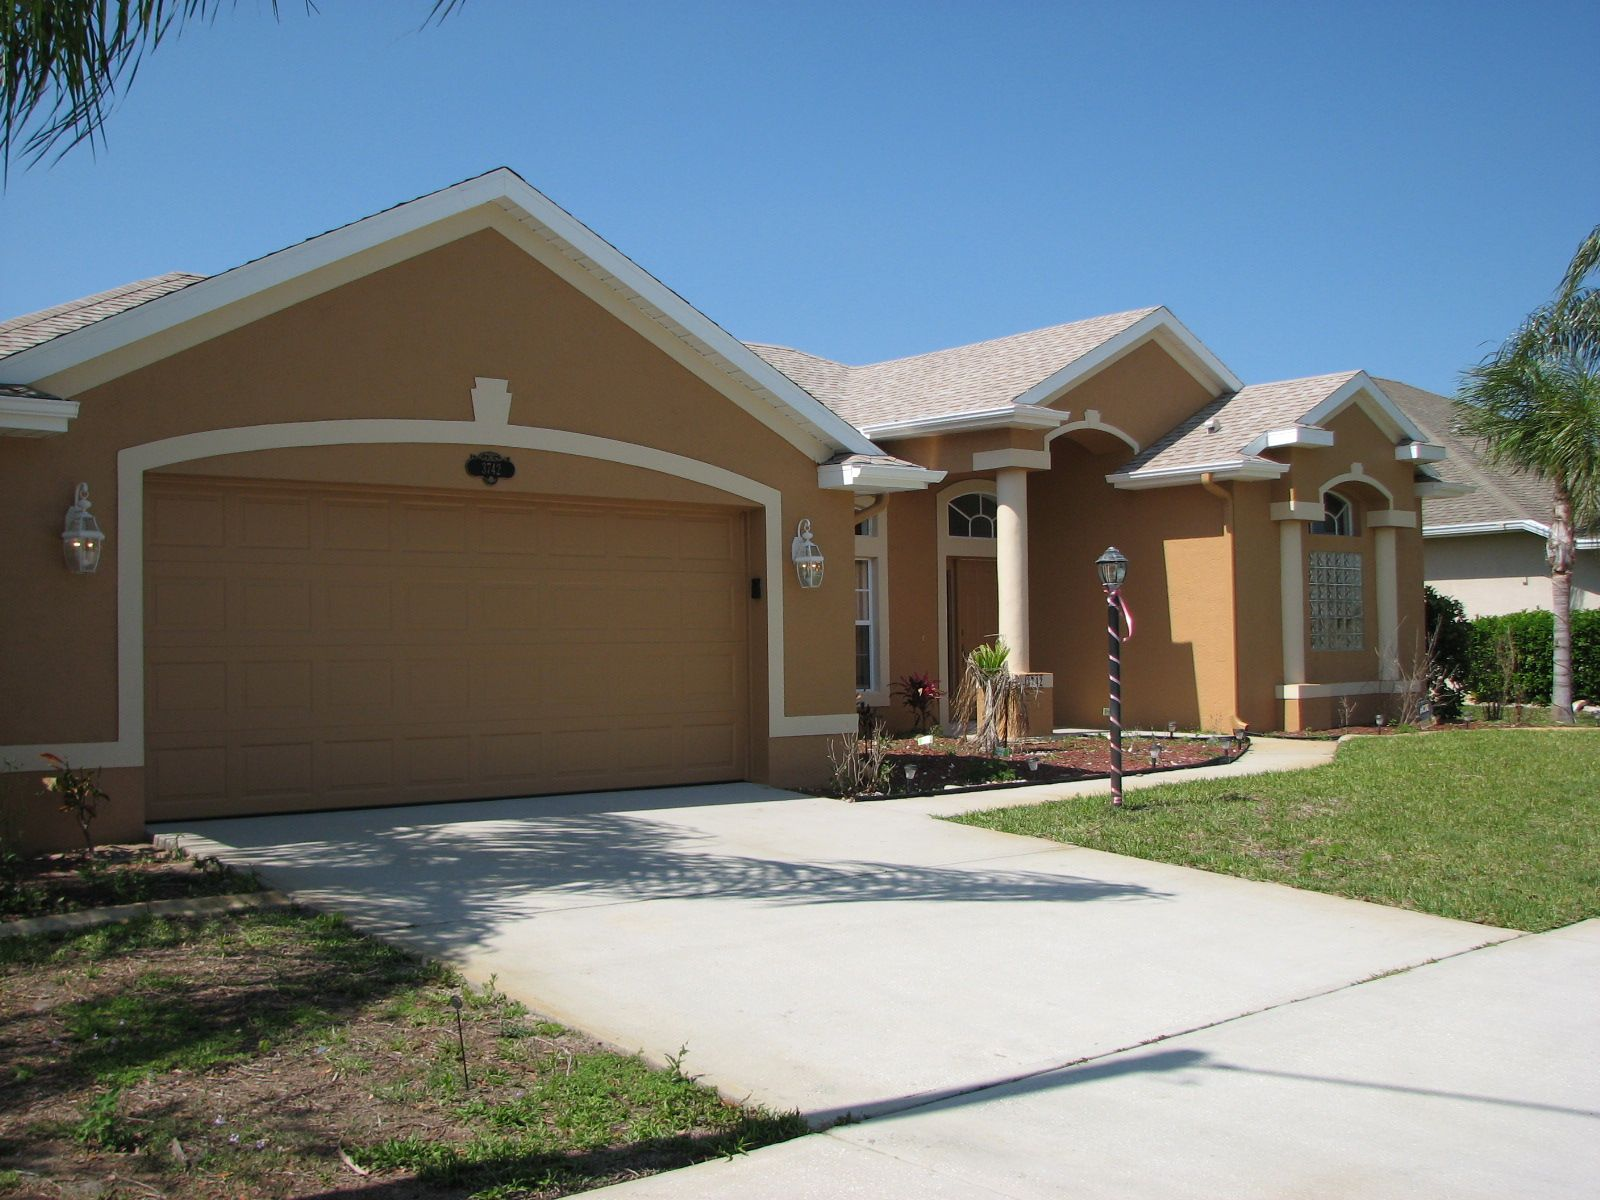 New Colors For Stucco Homes Exterior Painting Melbourne Florida S Dingy Sofs And